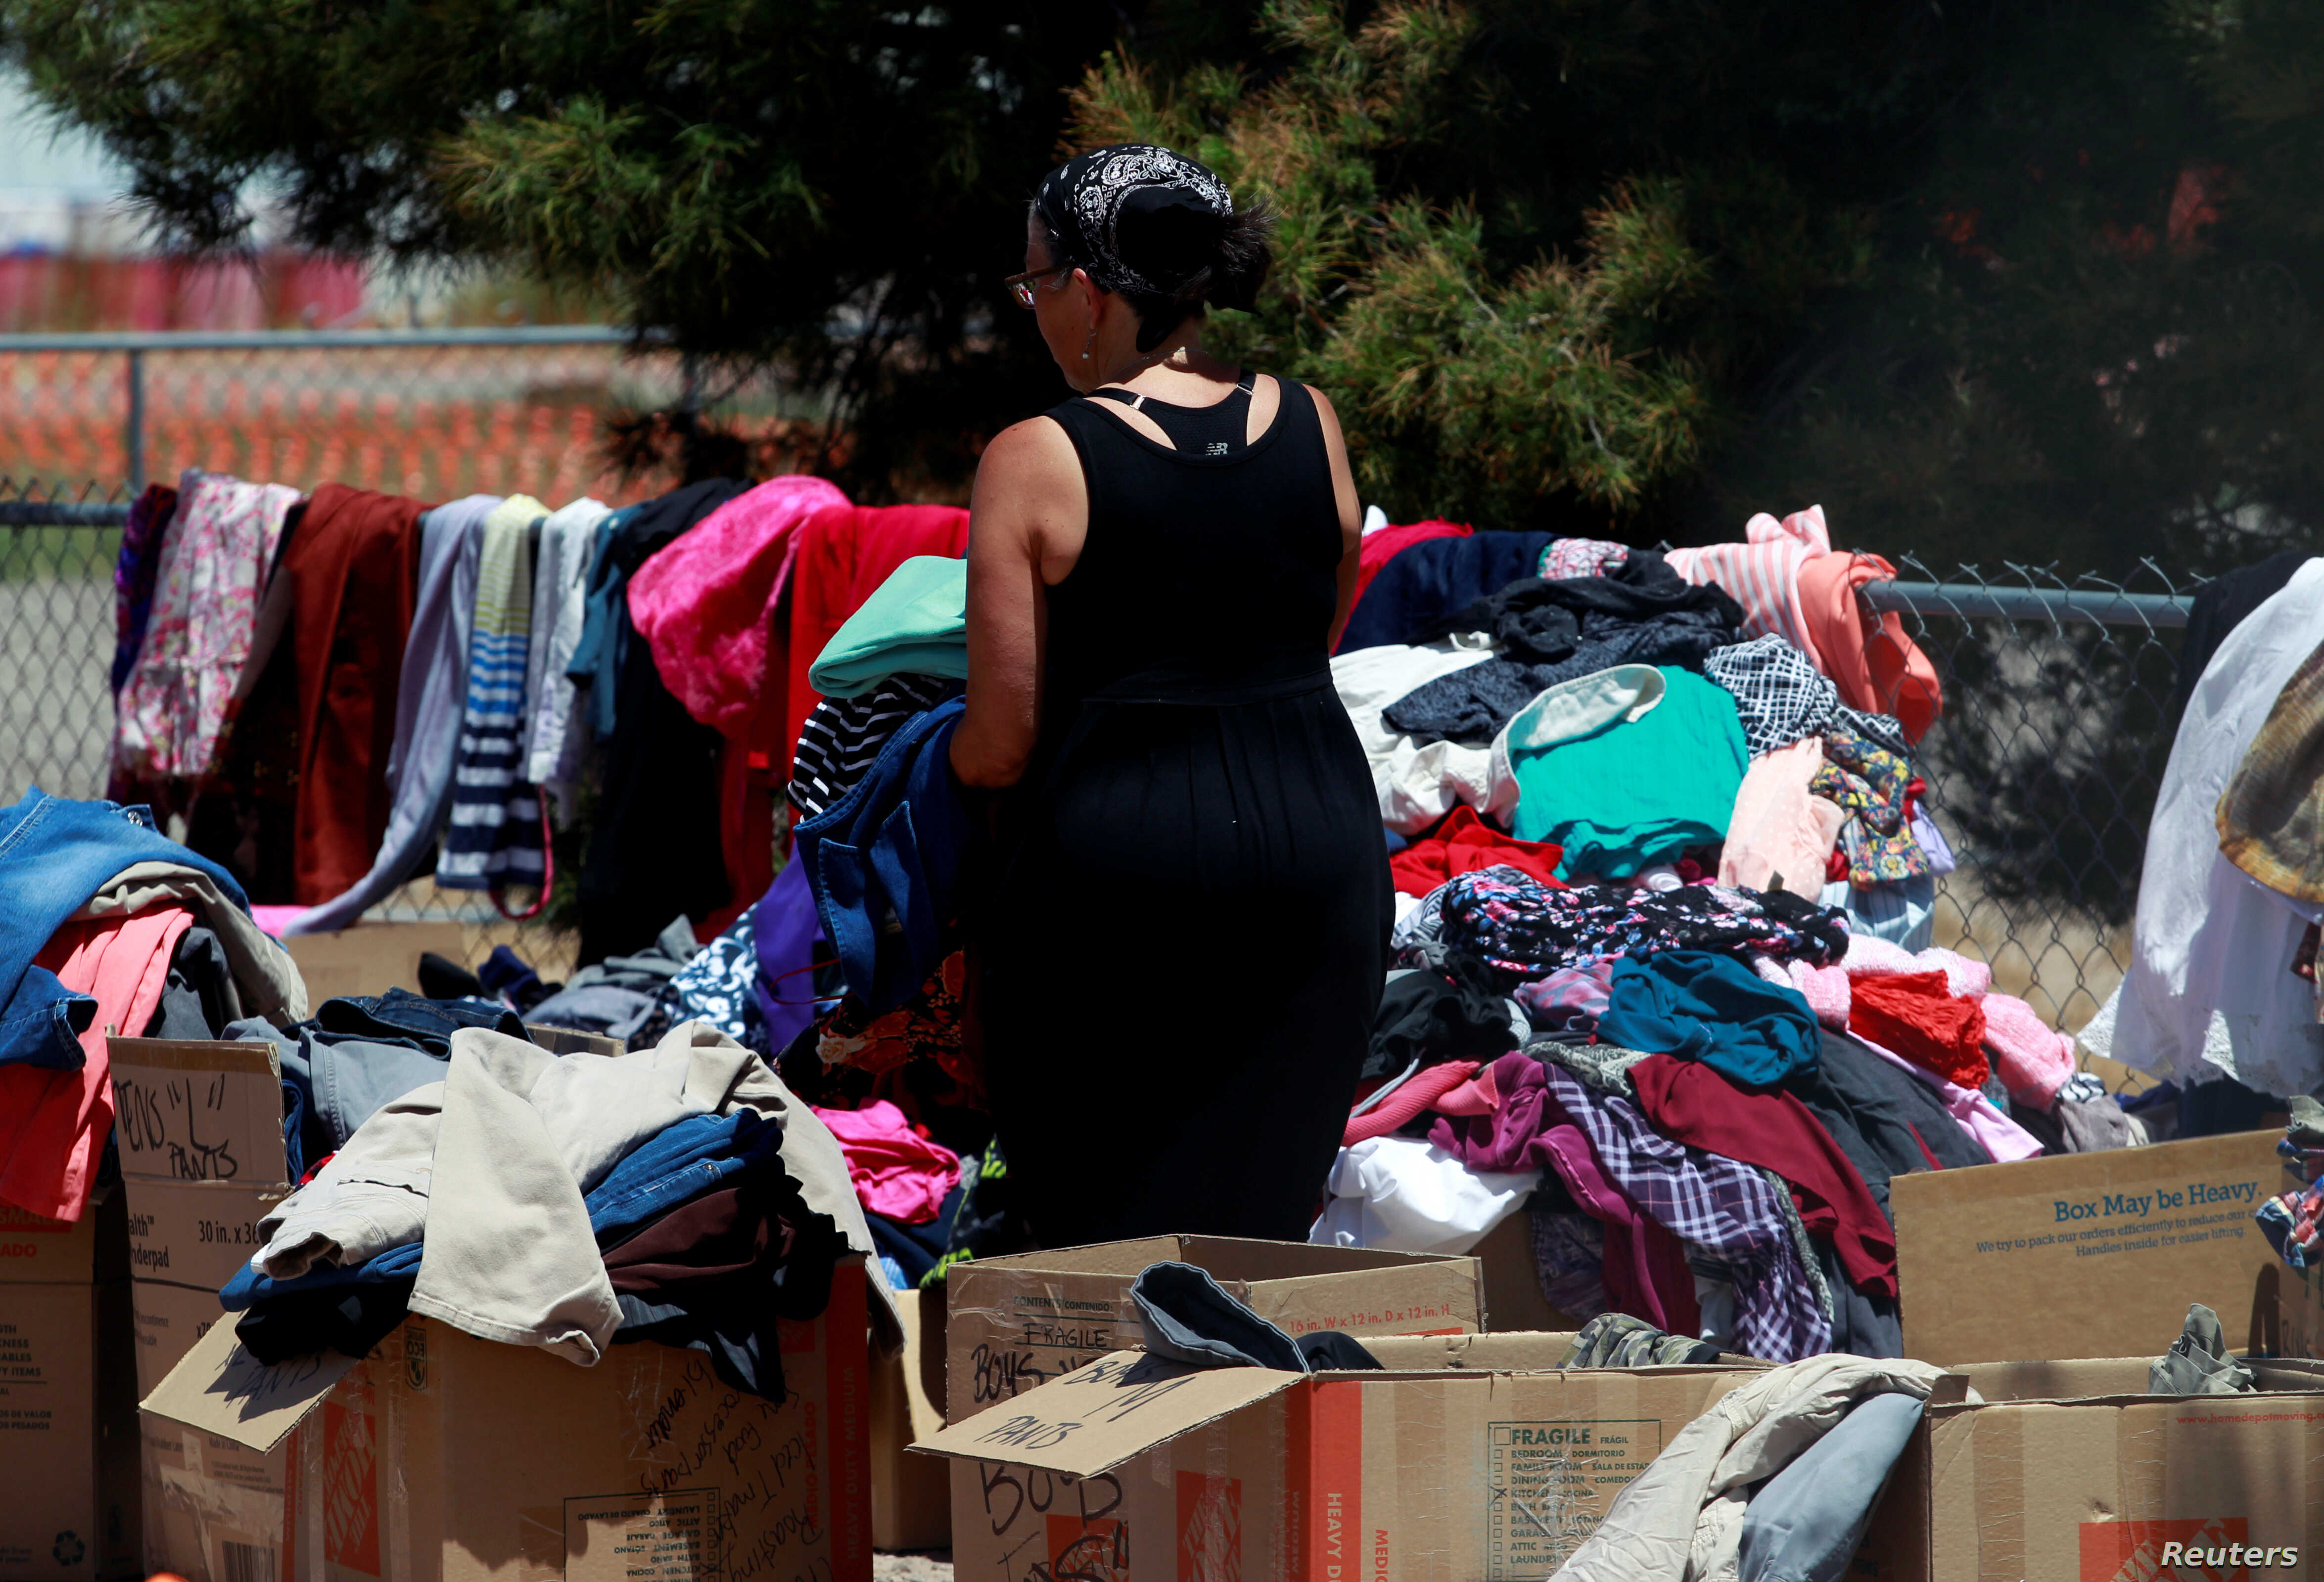 A volunteer sorts clothes donated for Central American migrants who are being accommodated at a temporary shelter after illegally crossing the border between Mexico and the U.S., in Deming, New Mexico, May 16, 2019.